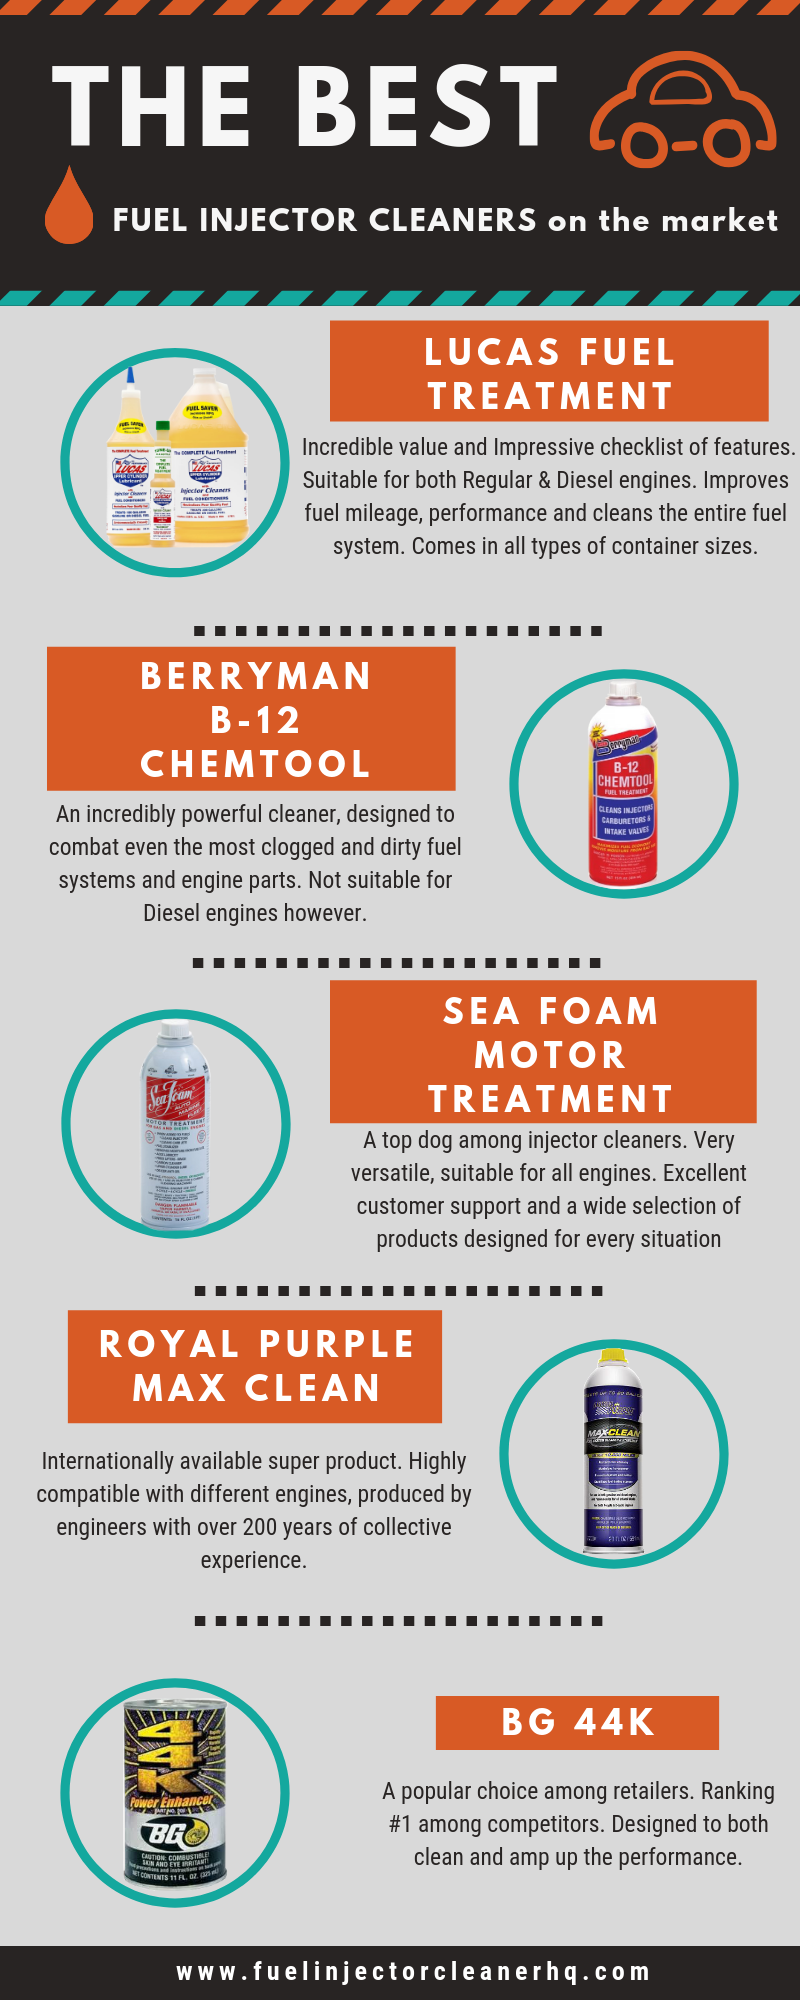 Best Fuel Injector cleaners - an infographic